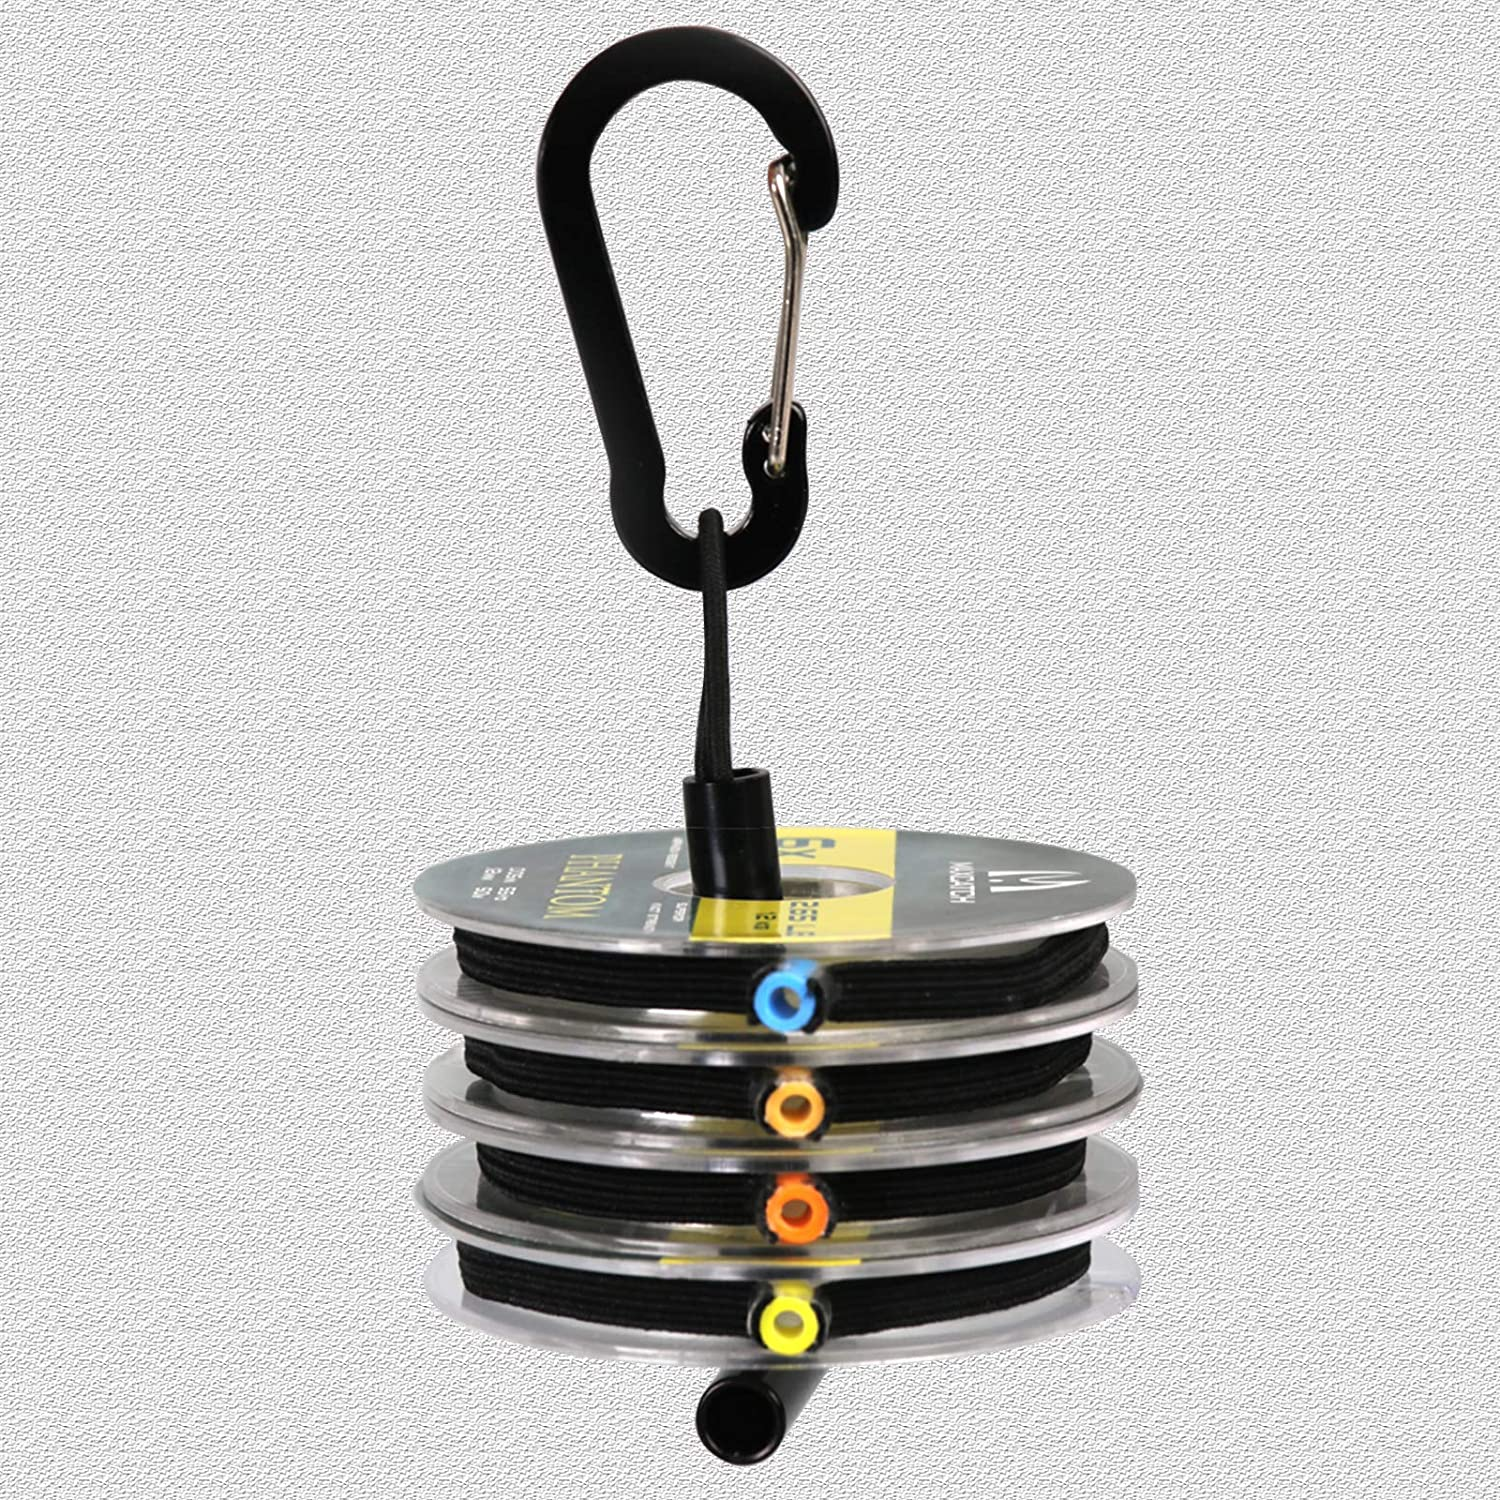 M MAXIMUMCATCH Maxcatch Fly Fishing Tippet Line with Tippet Holder /& Spool Tender 50m//55Yds Clear 4PCS